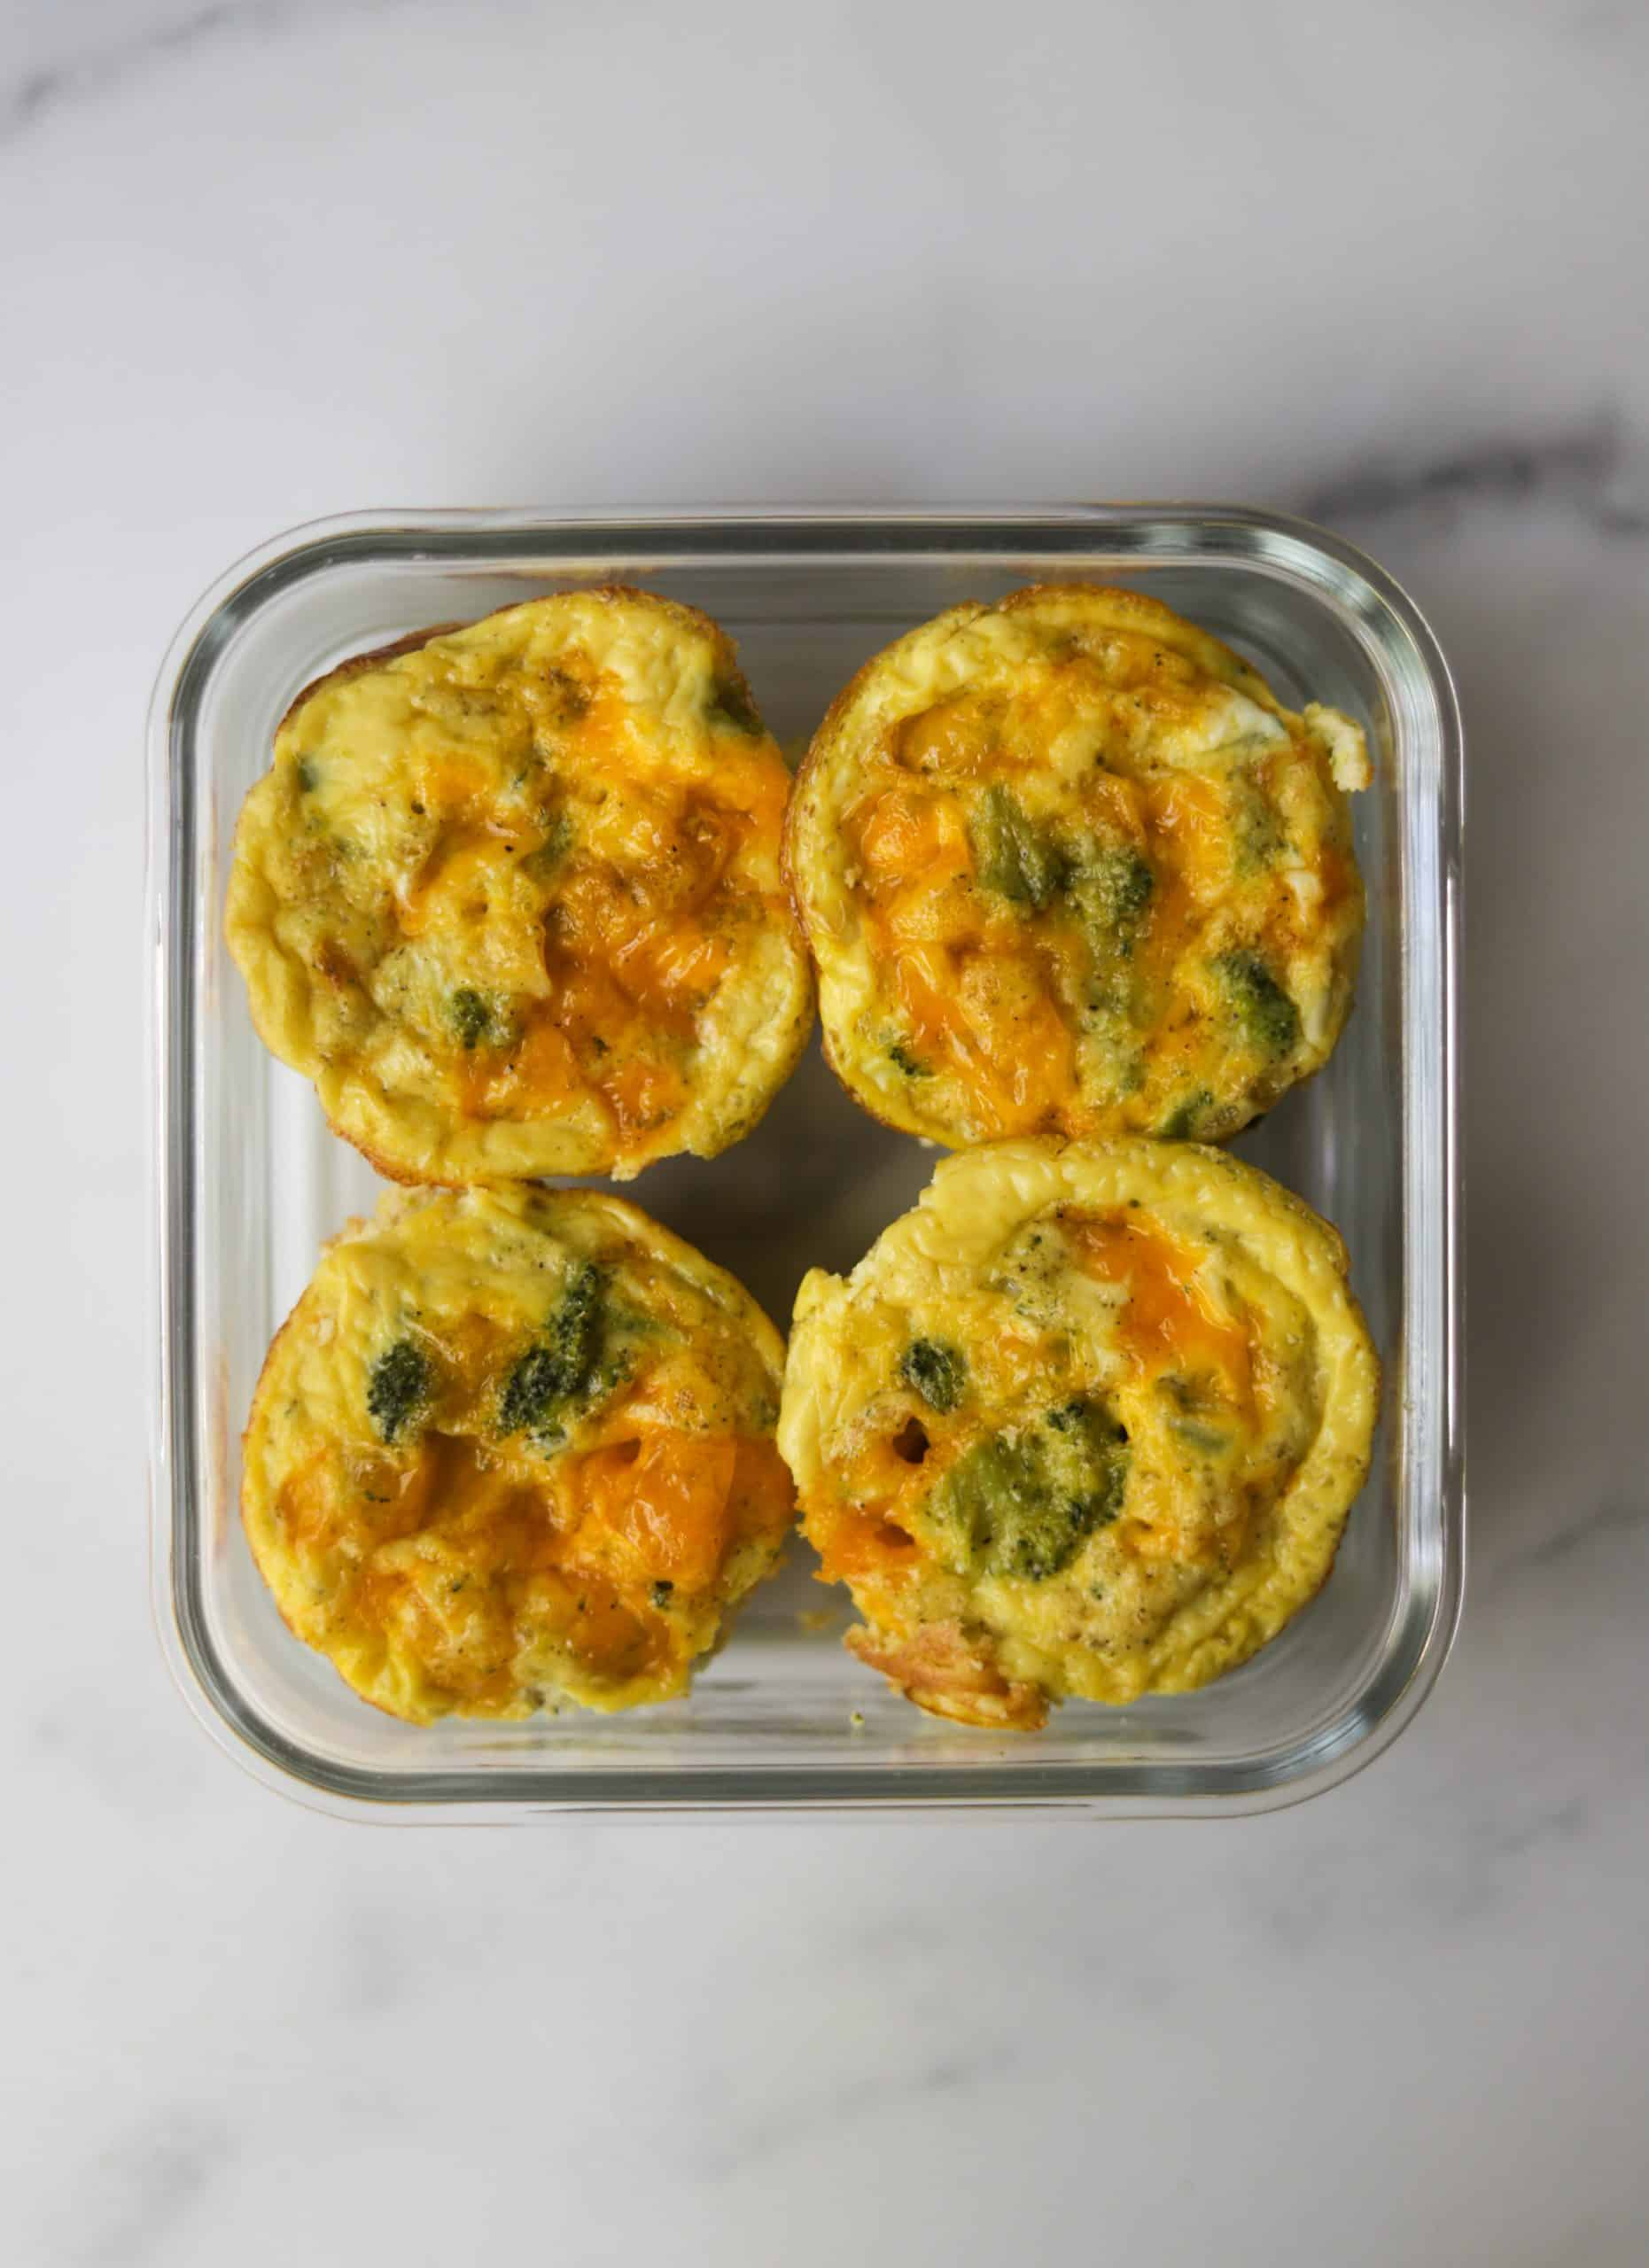 Egg muffins in a meal prep container.